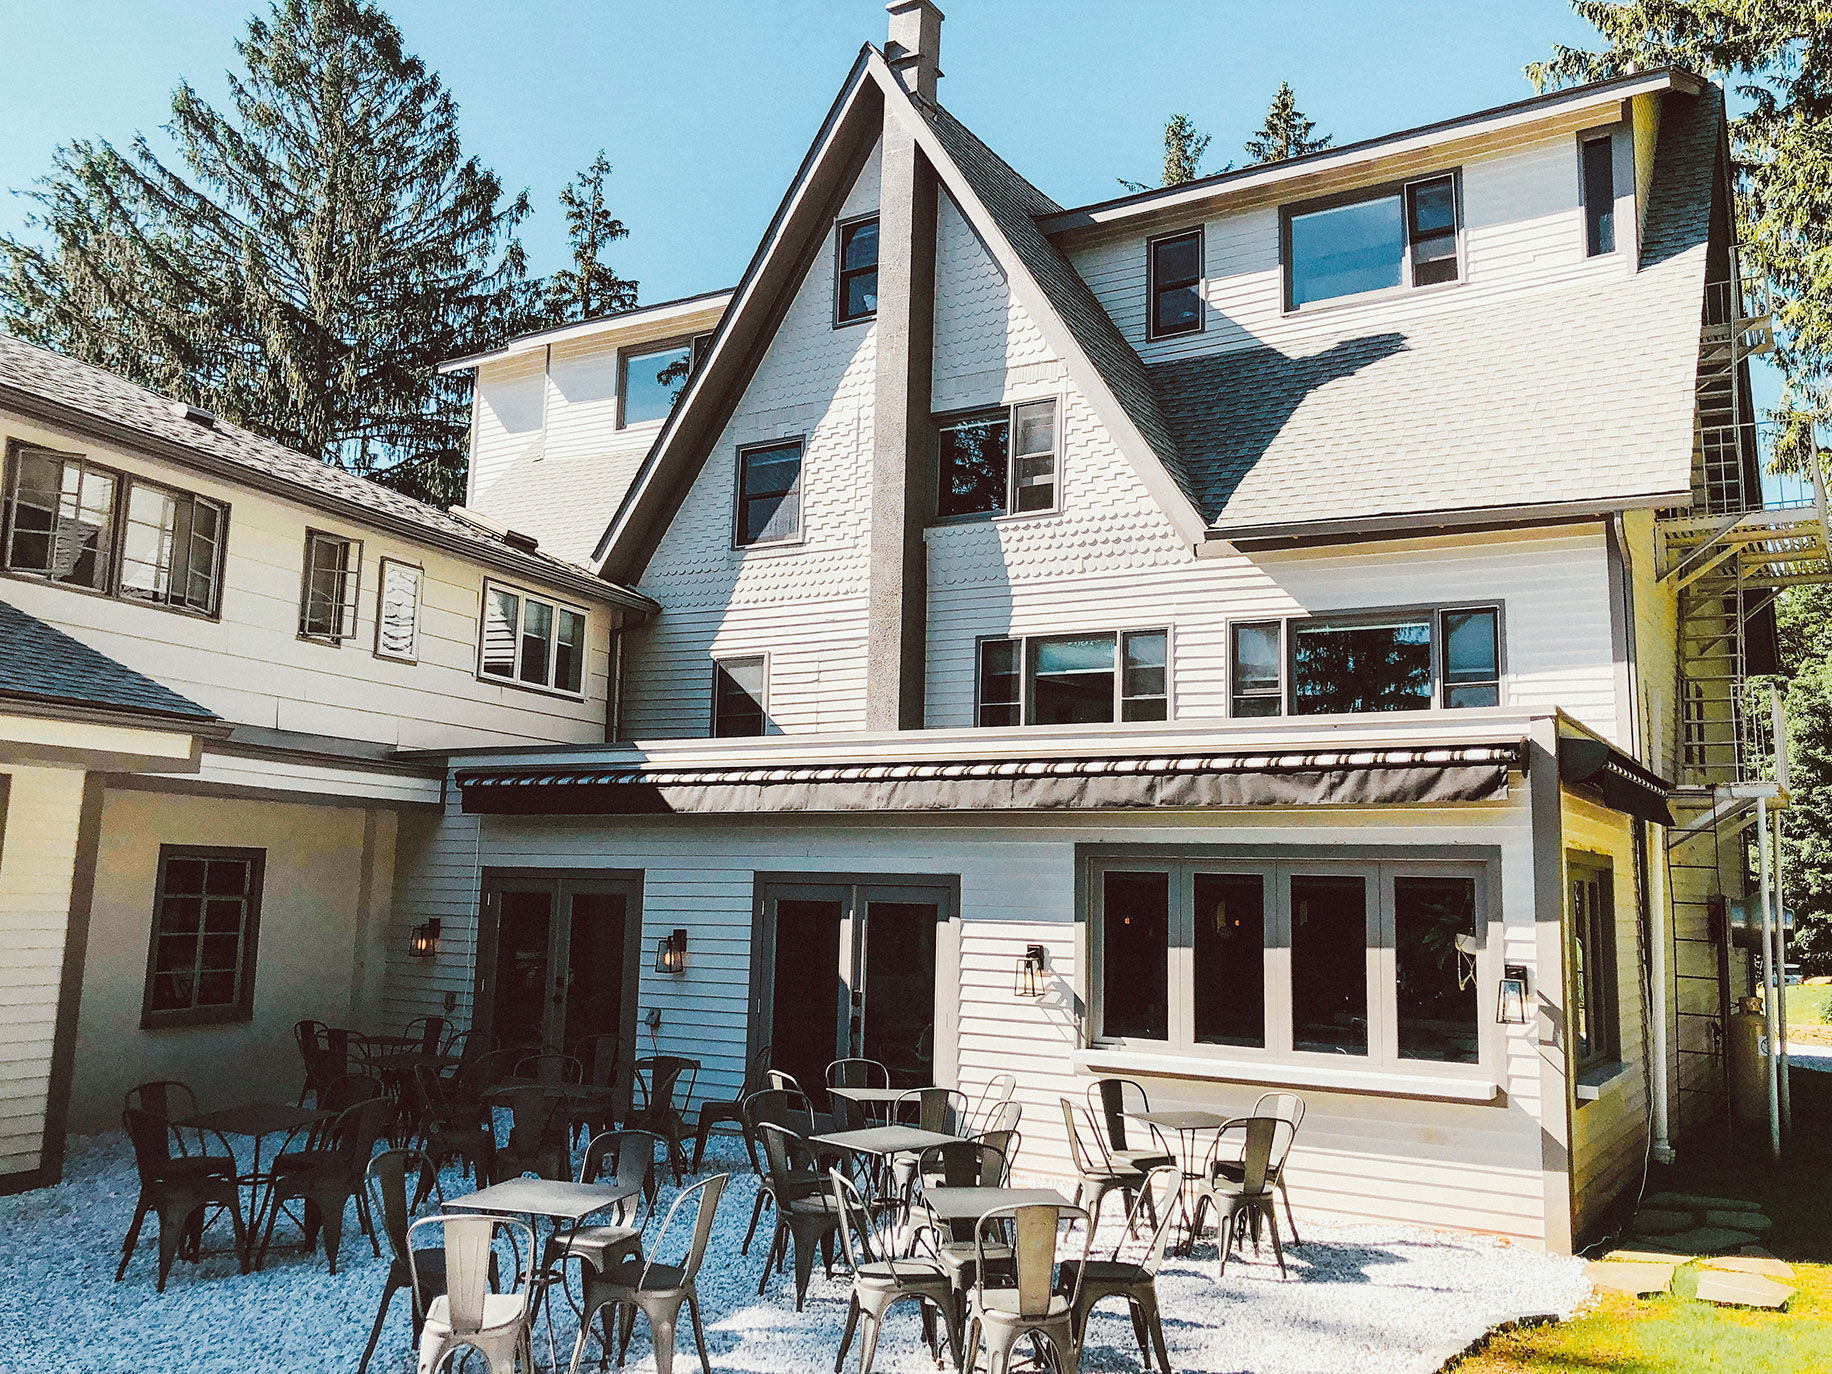 Farmhouse Catskills forms a social hub for the community and country inn visiting guests